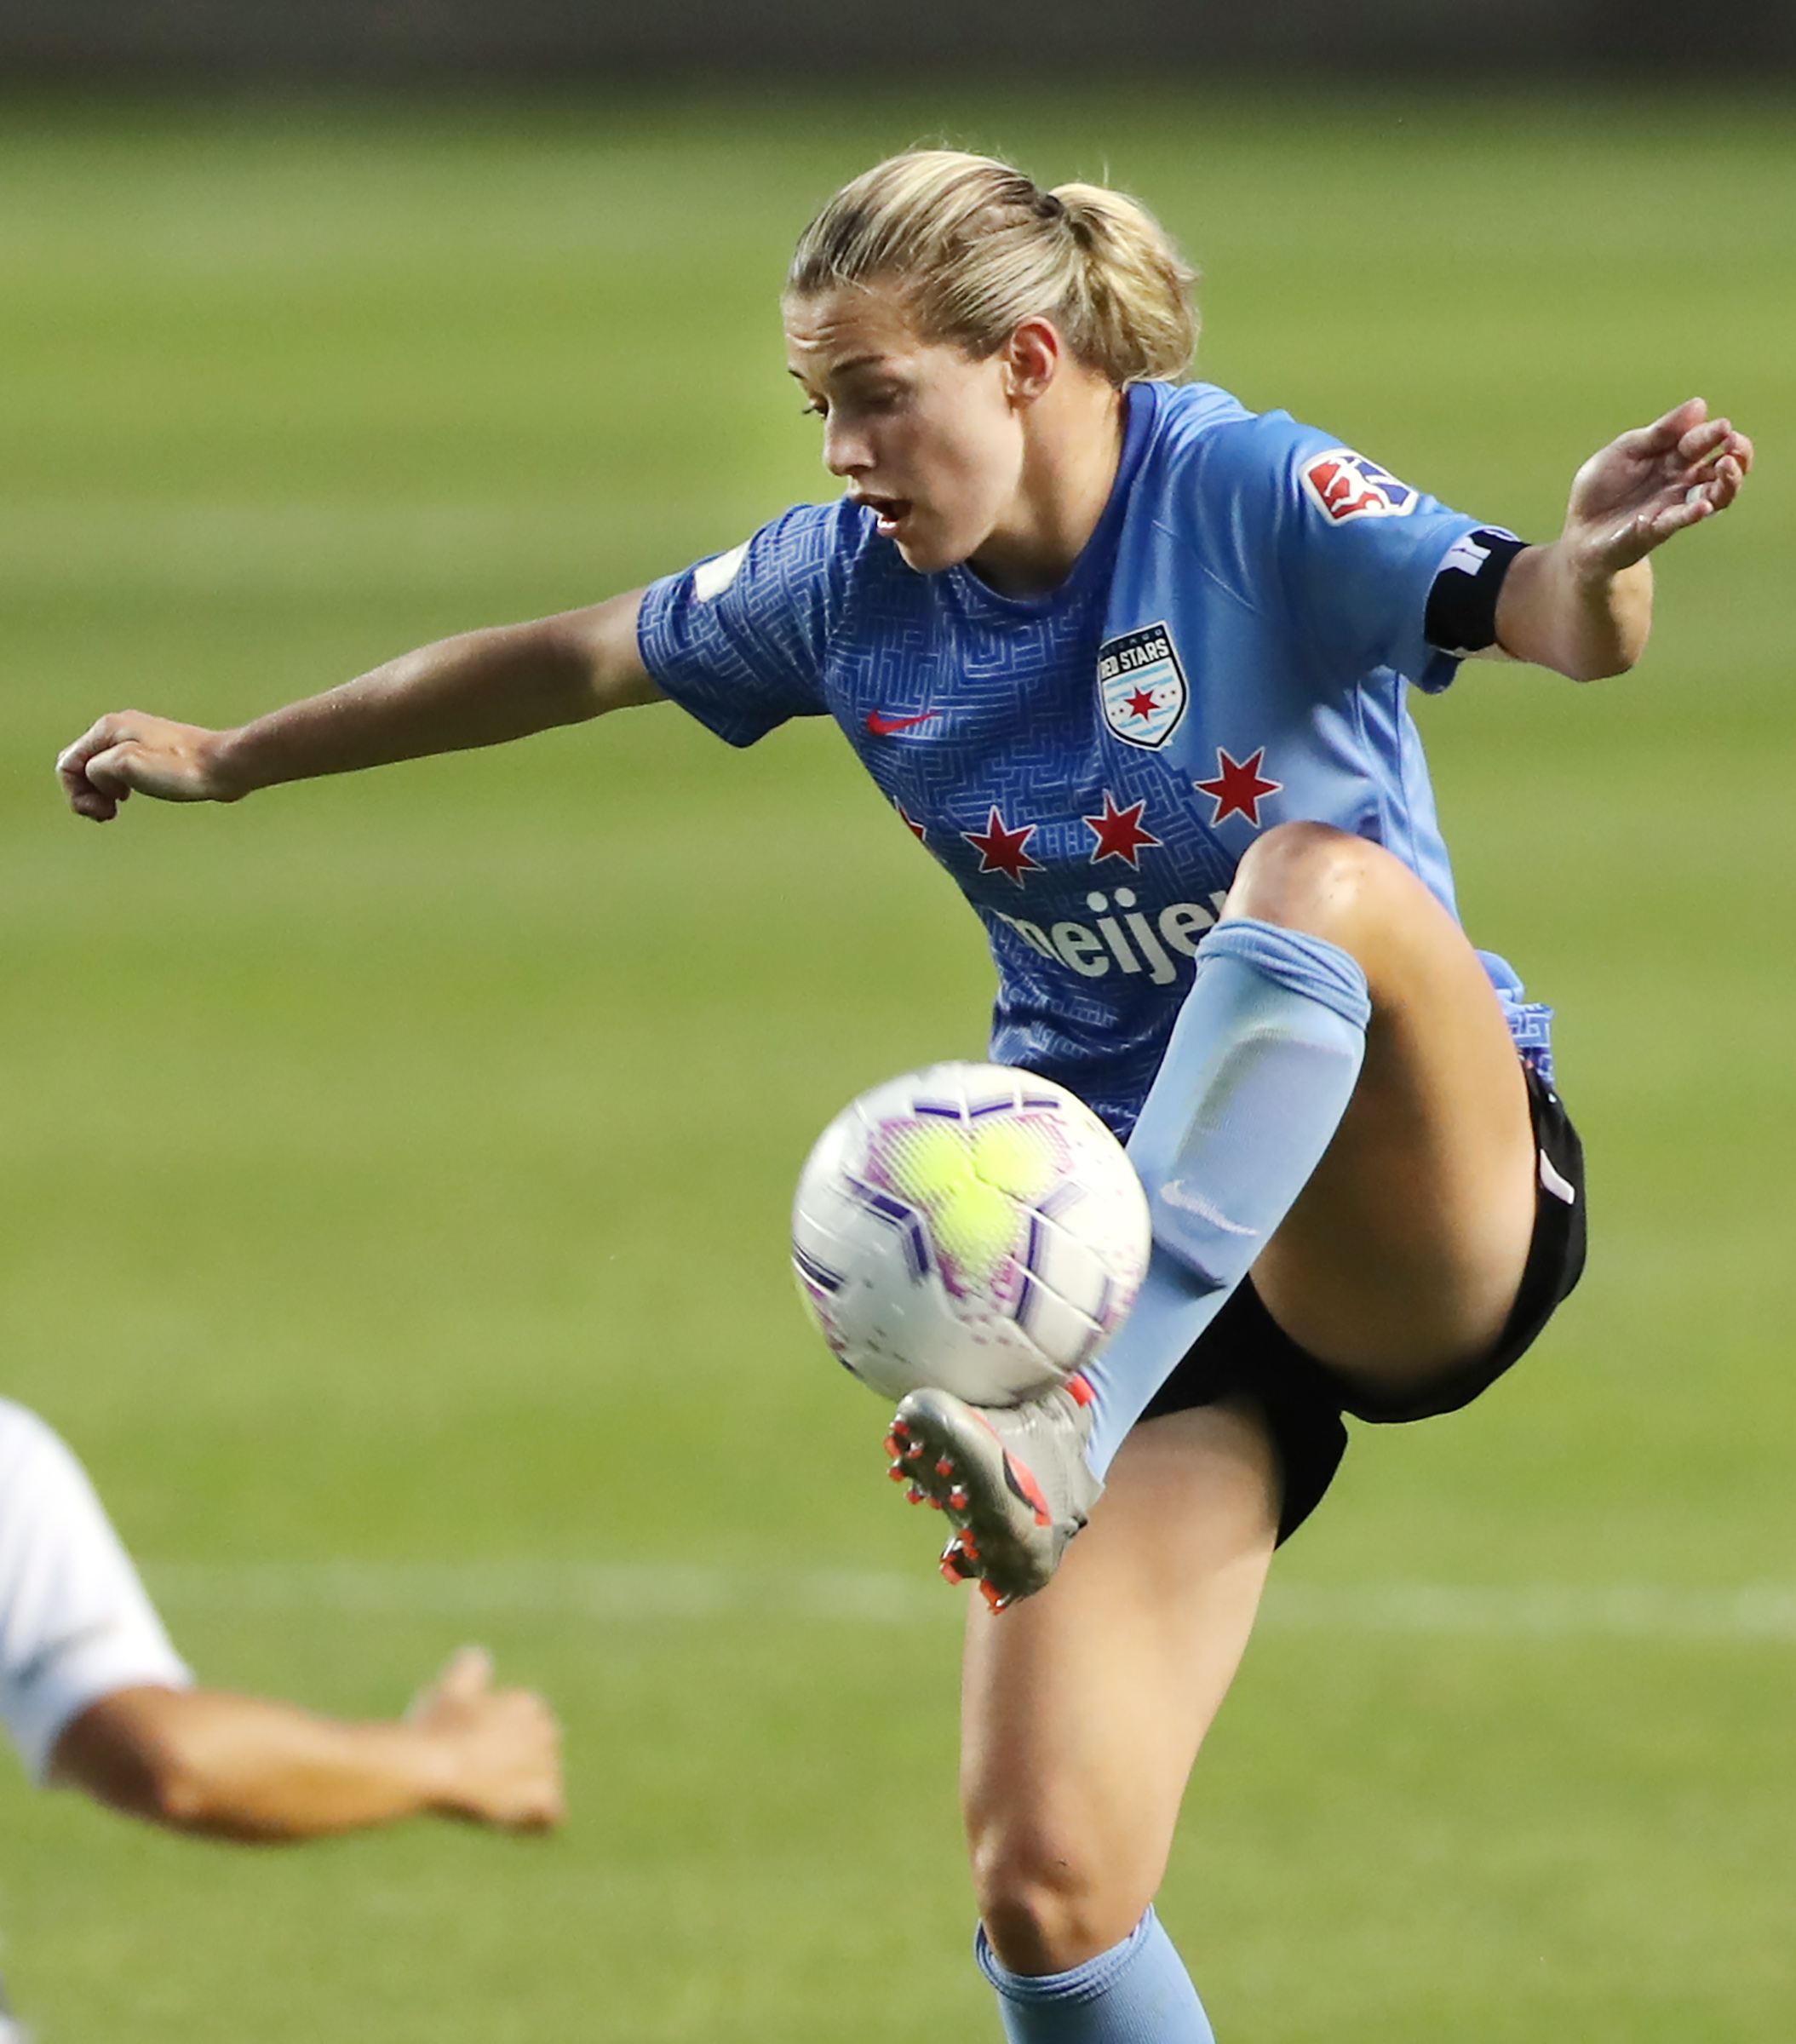 Chicago Red Stars forward Kealia Watt (2) controls the ball during play Sky Blue FC and Chicago Red Stars play in the semifinals of the NWSL Challenge Cup at Rio Tinto Stadium in Sandy on Wednesday, July 22, 2020. Chicago won 3-2.